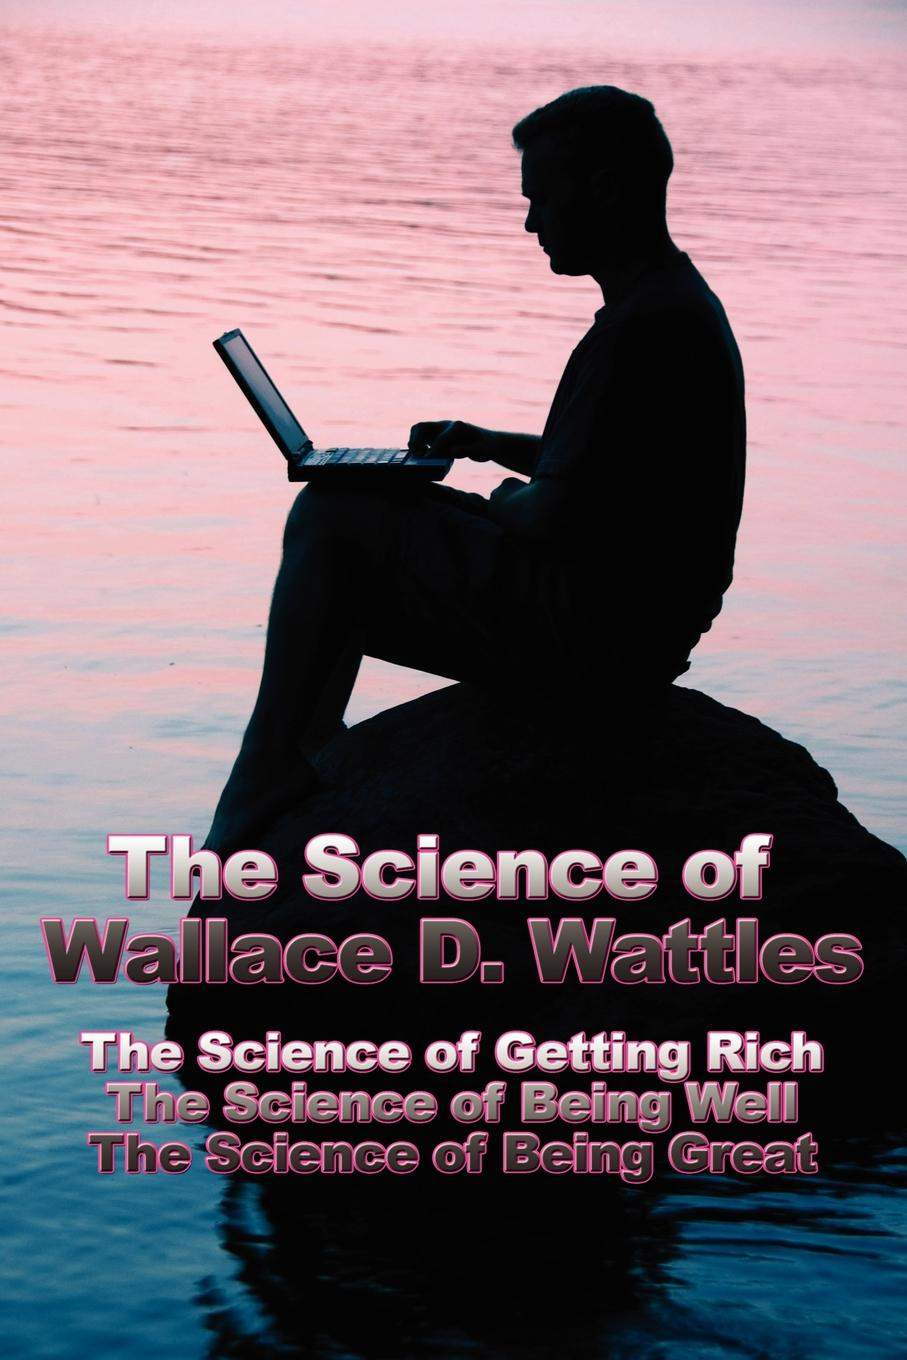 Wallace D. Wattles The Science of Wallace D. Wattles. The Science of Getting Rich, The Science of Being Well, The Science of Being Great fergus o connell earn more stress less how to attract wealth using the secret science of getting rich your practical guide to living the law of attraction